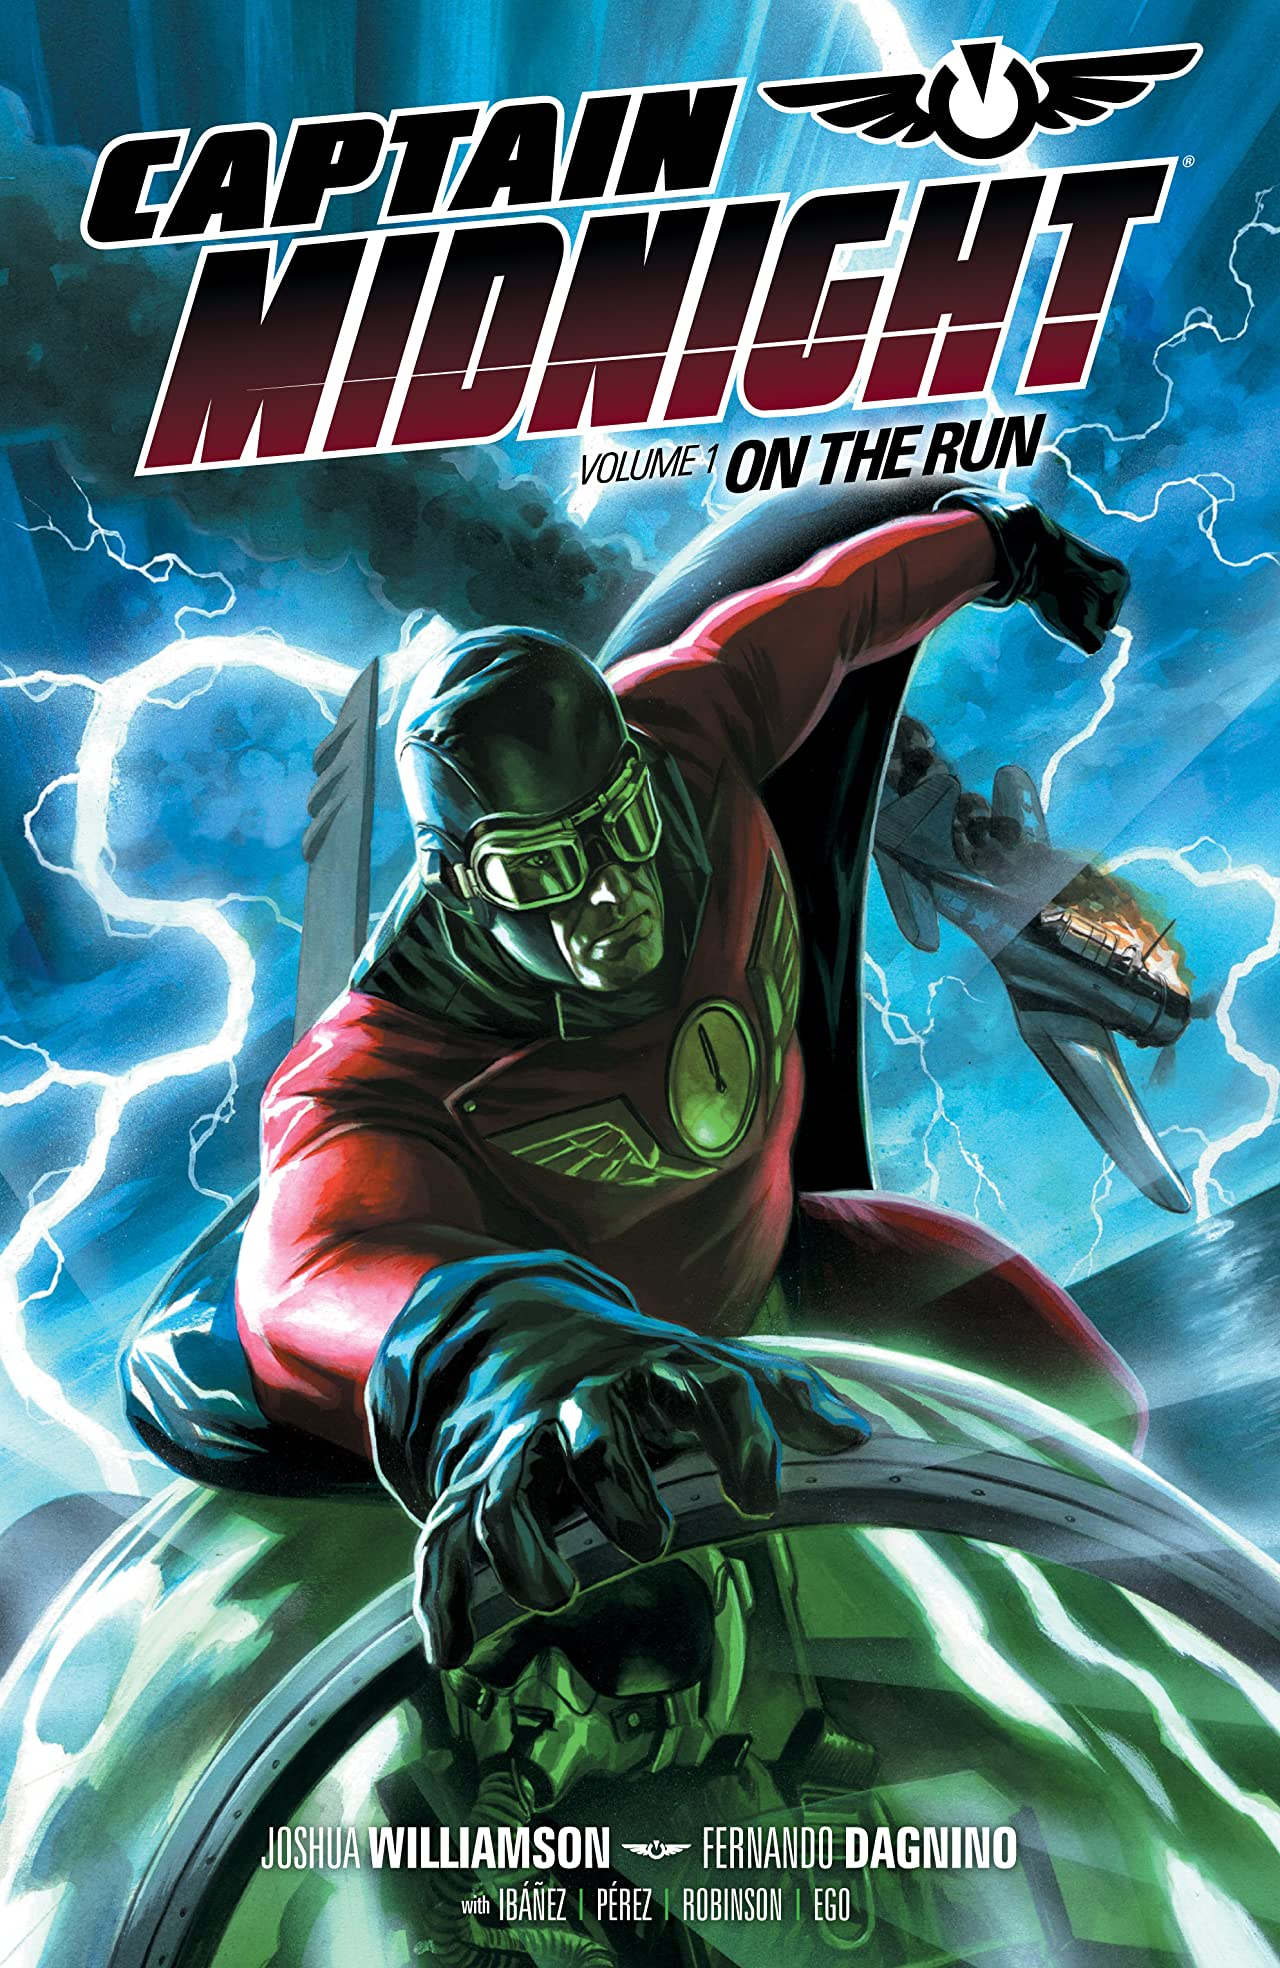 Captain Midnight Vol. 1: On the Run